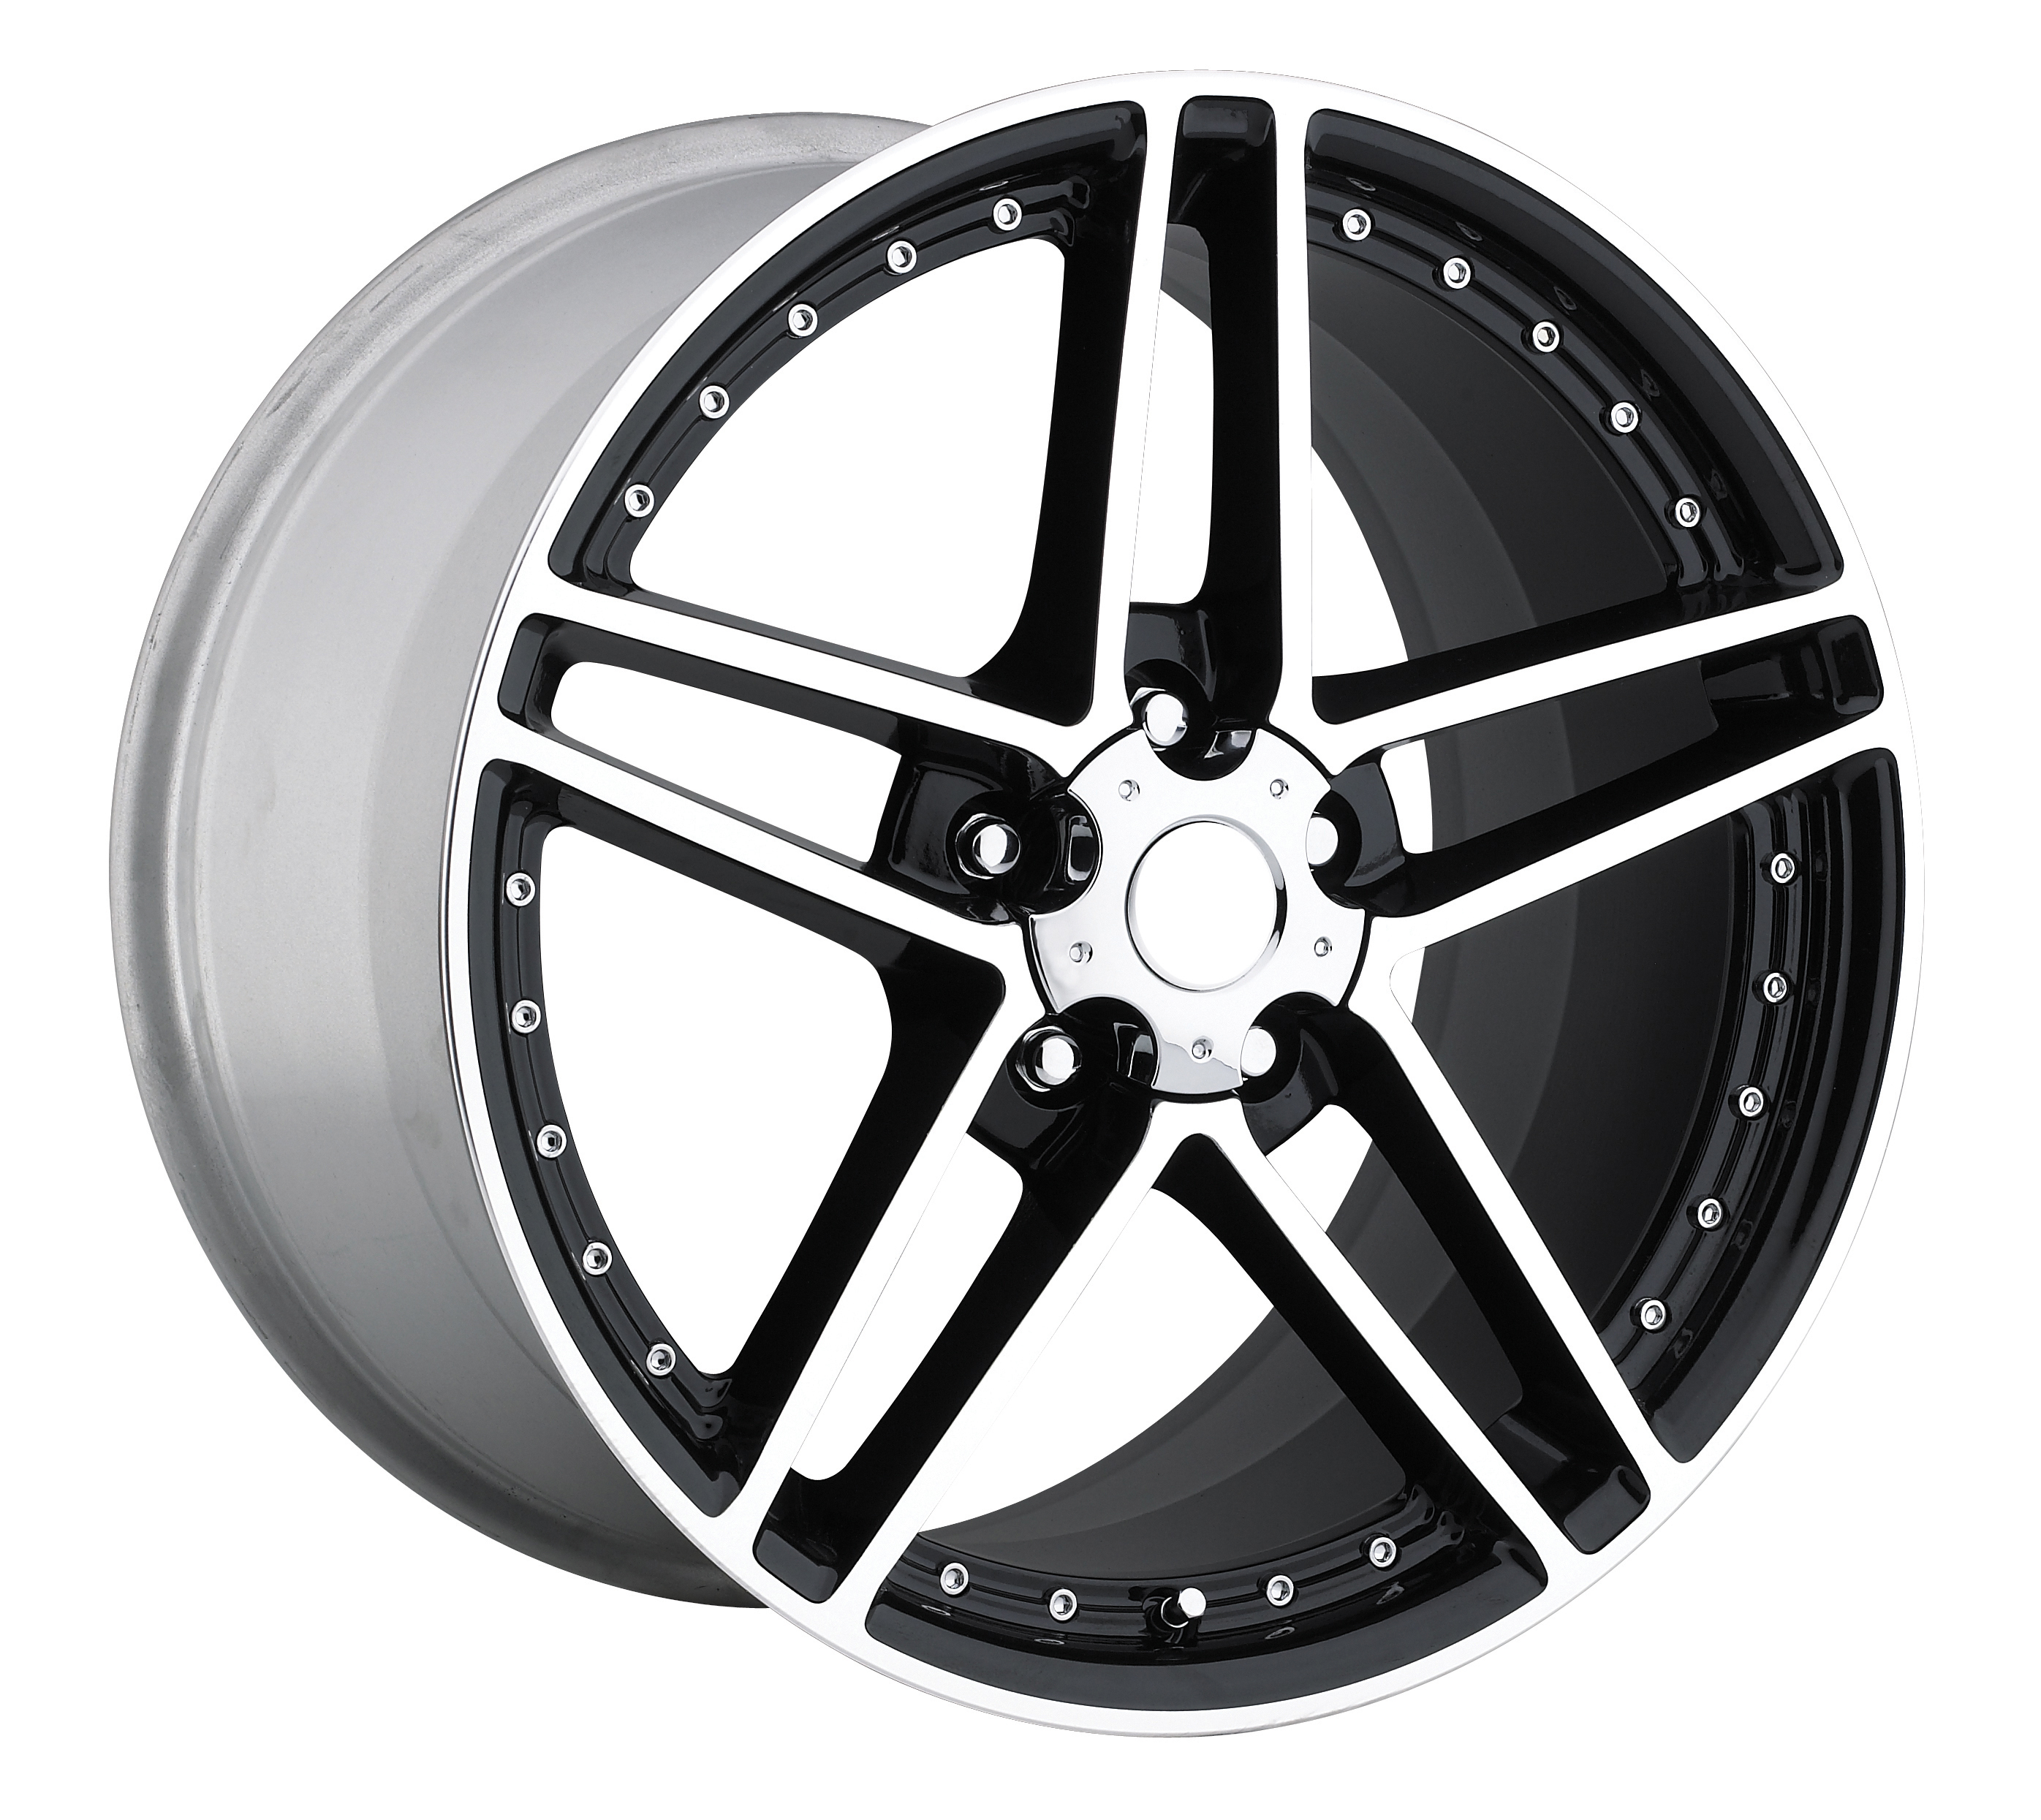 Chevrolet Corvette 1997-2012 18x9.5 5x4.75 +40 - C6 Z06 Motorsport Wheel -  Black Machine Face With Cap